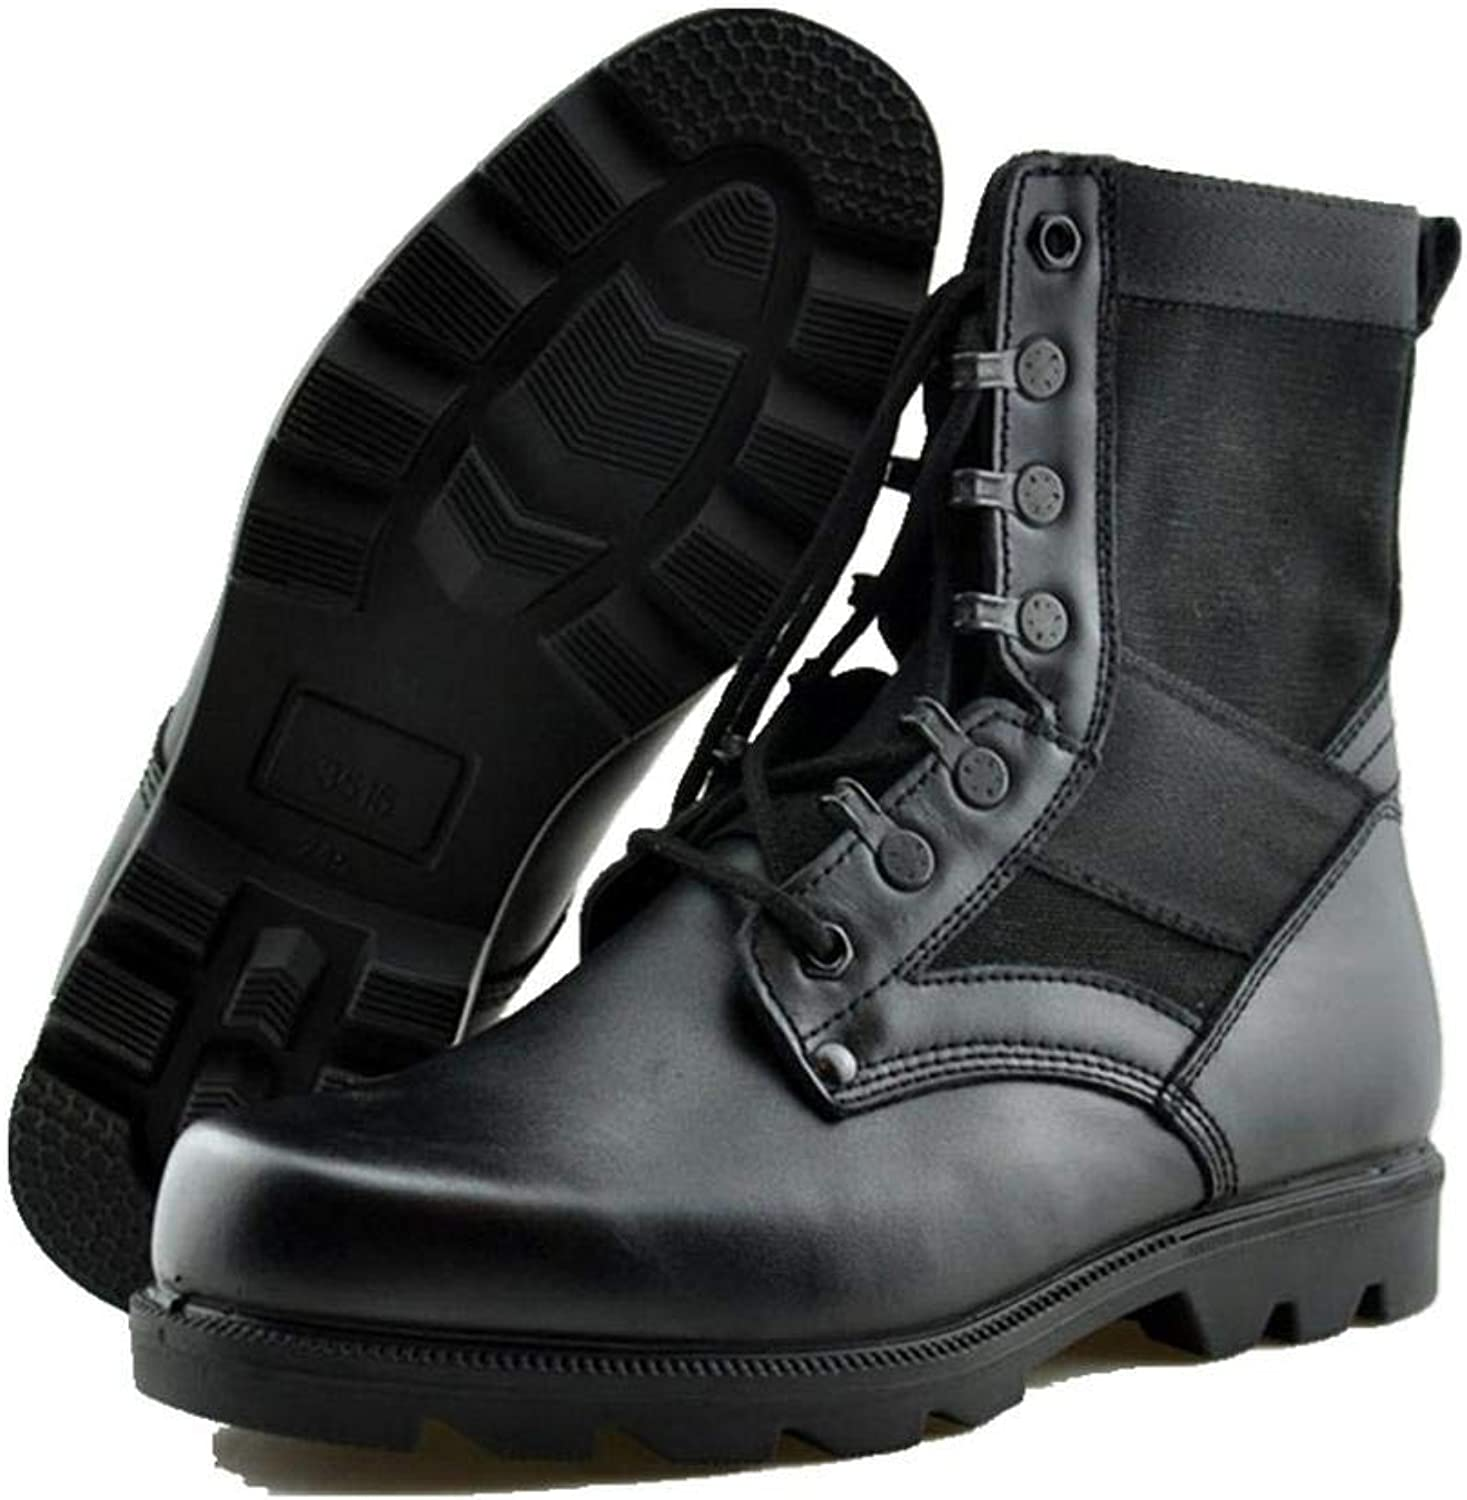 QIKAI Desert Combat Boots Combat Boots, Military Boots, Men's Training, Tactical Boots, high-top Outdoor Training shoes